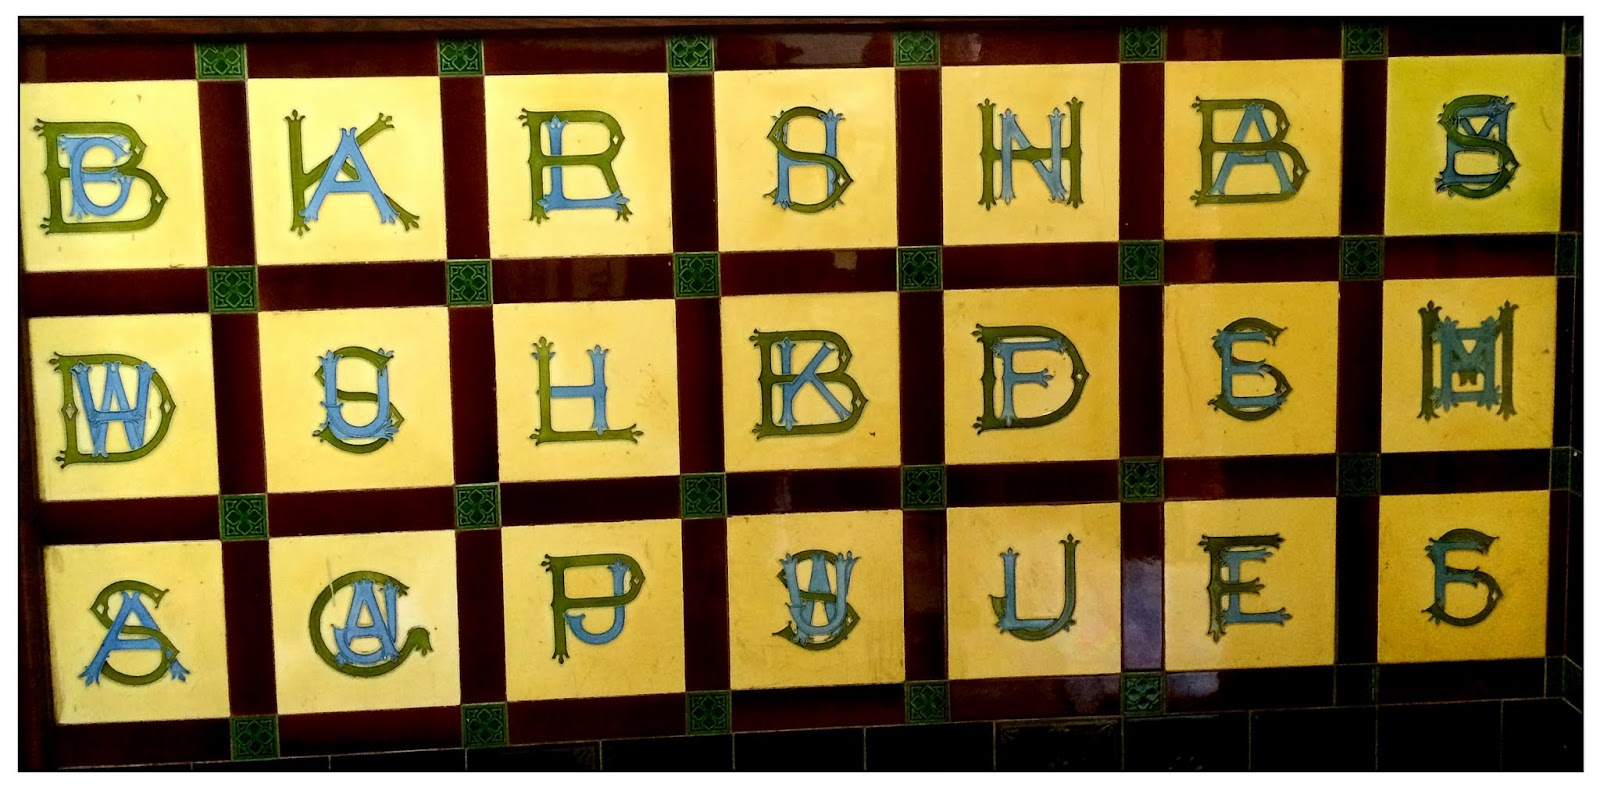 News from nowhere ceramic scrabble at the wes some kind of uplifting message with the random letters i then thought they might be some kind of decorative alphabet set a victorian ceramic primer dailygadgetfo Image collections